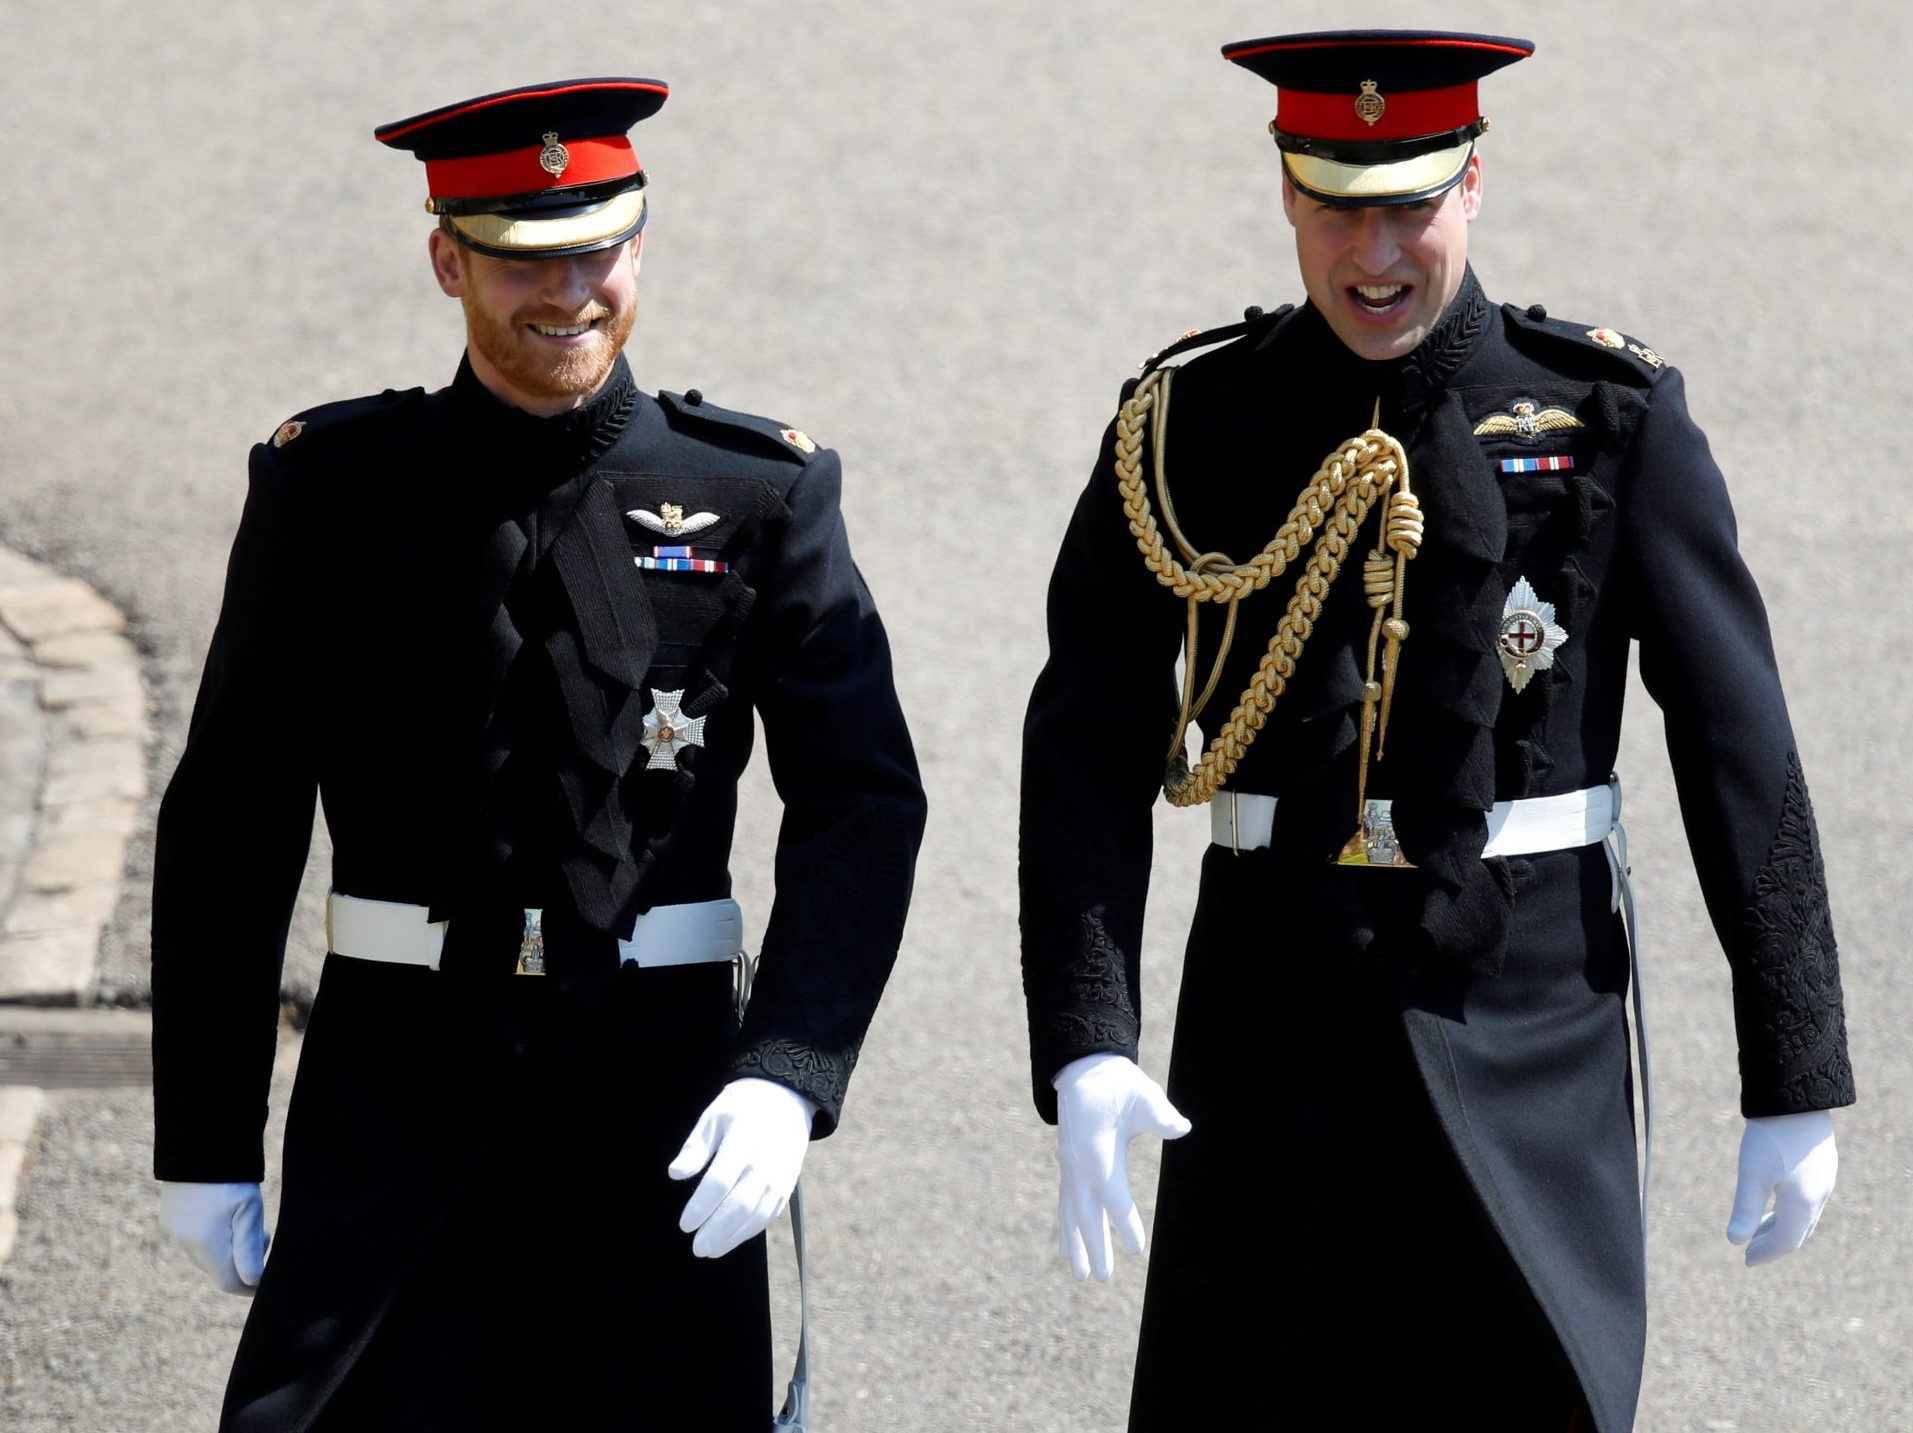 DISLOYAL ROYAL? William, Charles reportedly no longer trust Harry